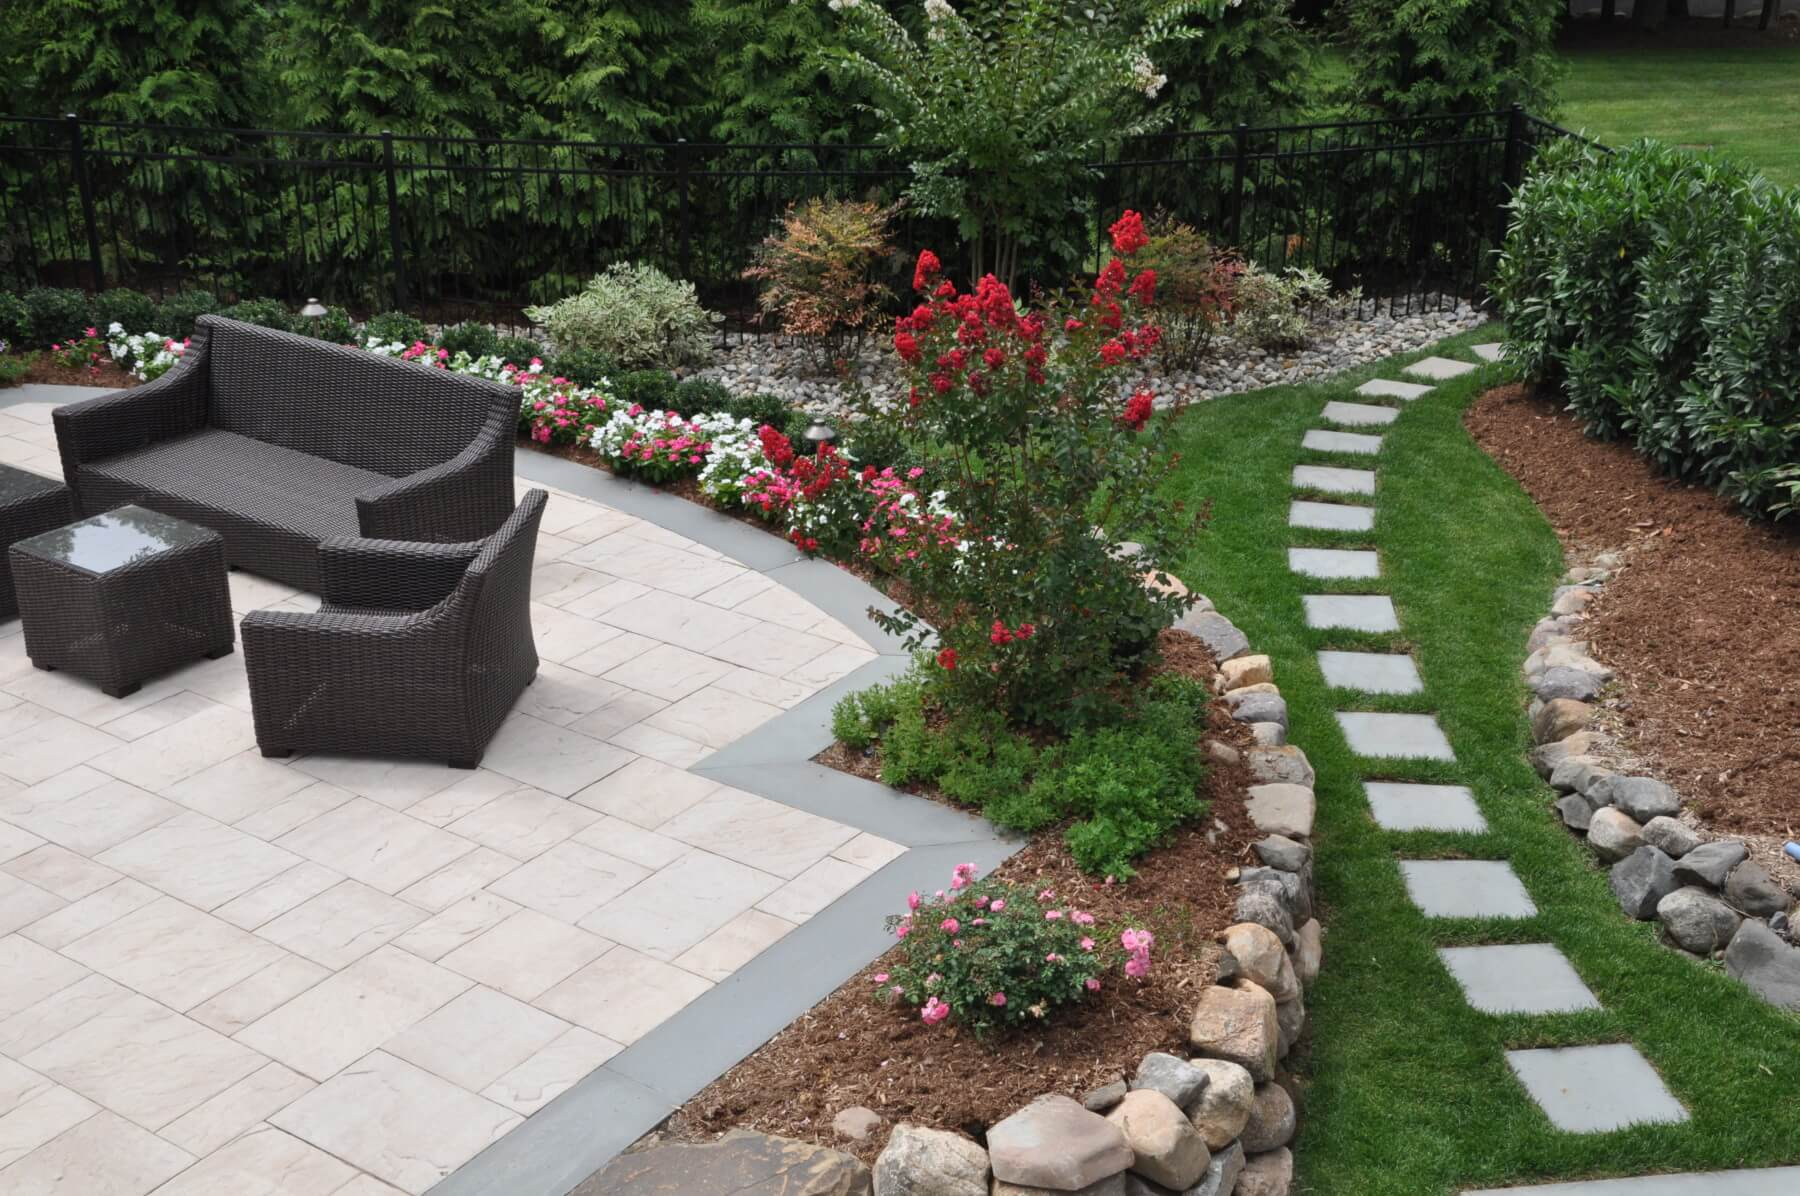 Small Backyard Ideas That Can Help You Dealing with the ... on Back Patio Landscape Ideas id=37446